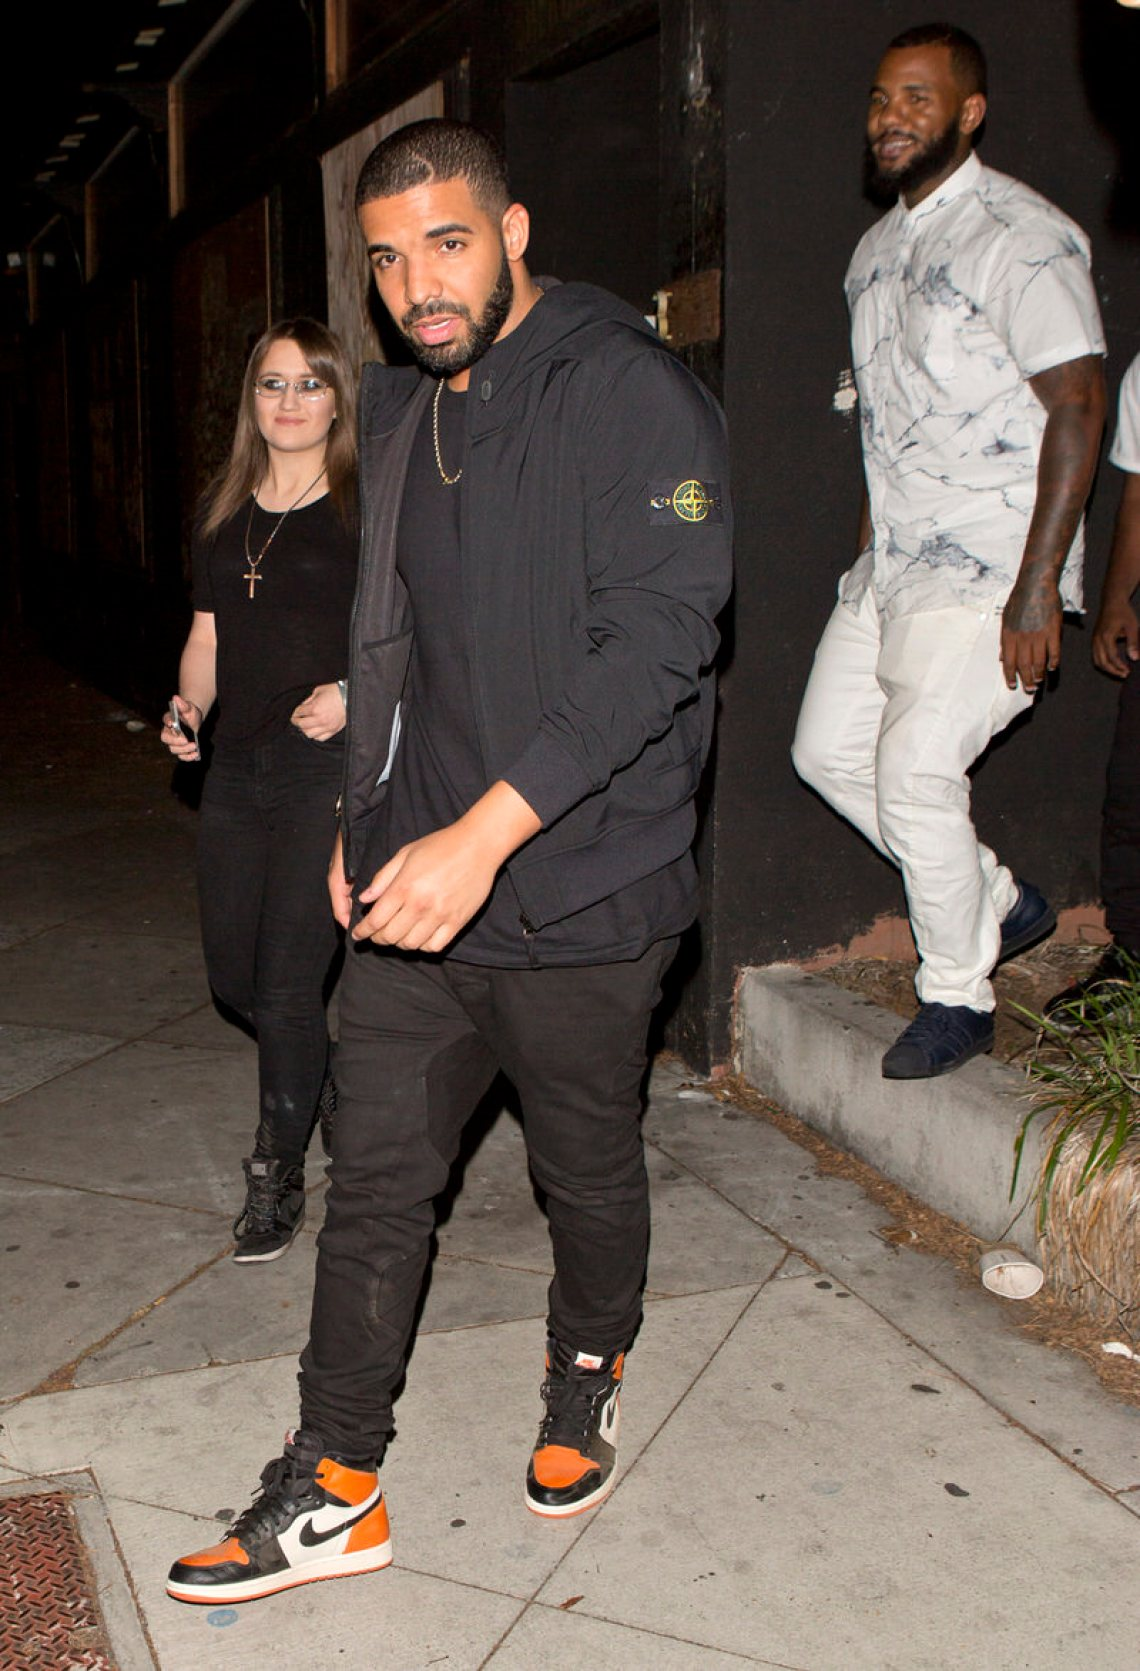 Drake's tactic of embracing simplicity allows his Shattered Backboard Jordan 1's to steal the show.